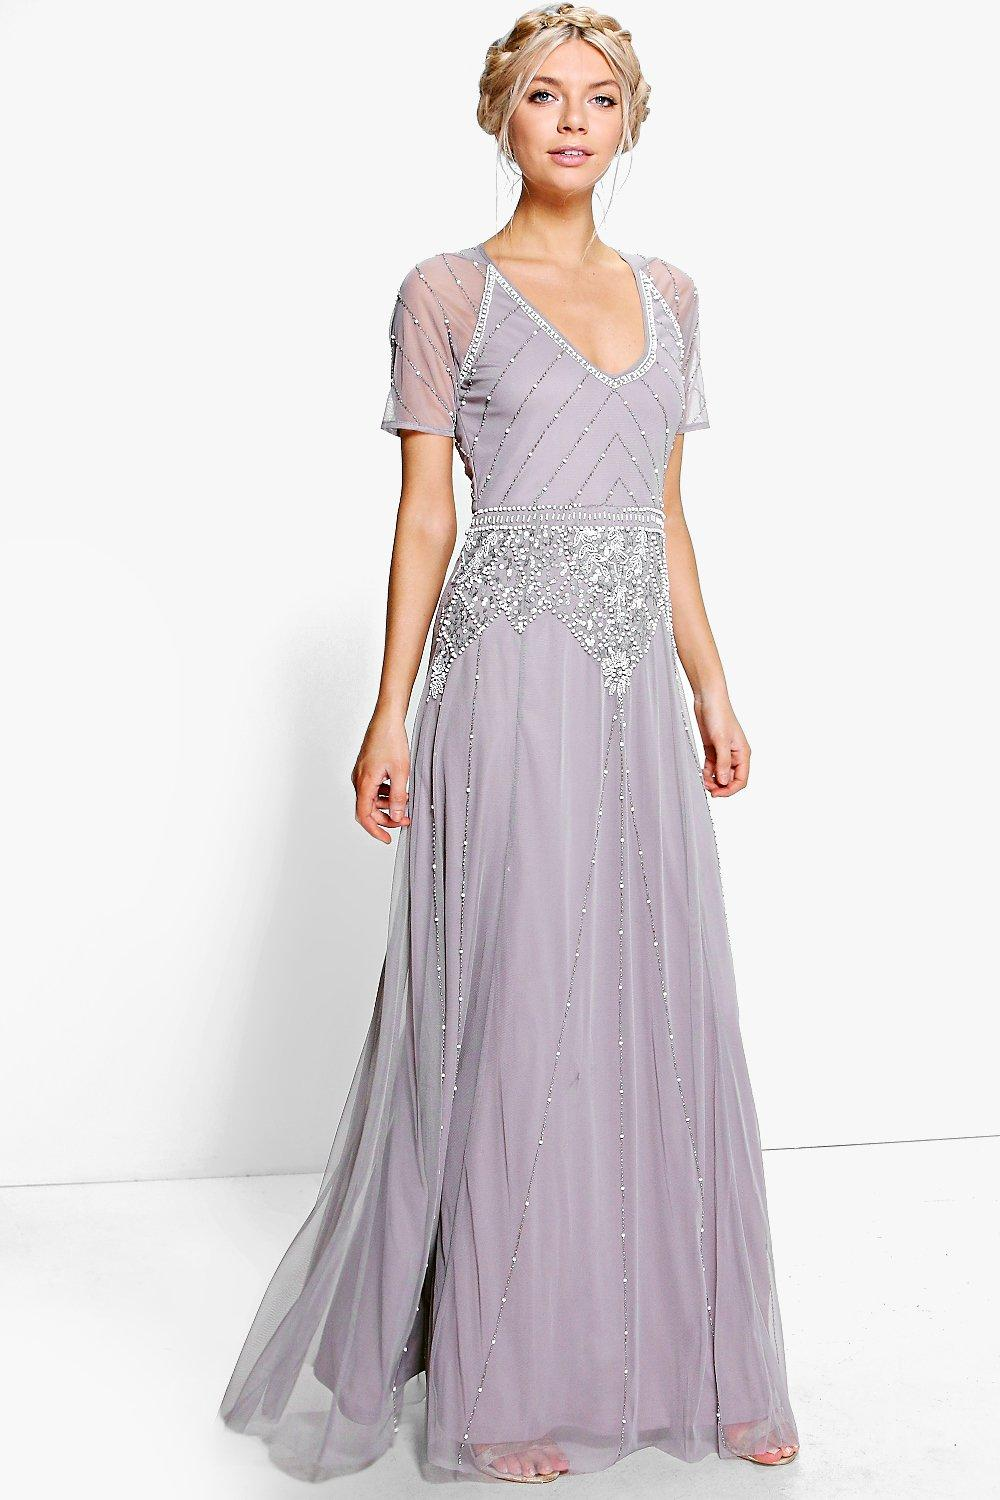 Best 1920s Prom Dresses – Great Gatsby Style Gowns Womens Boutique Beaded Cap Sleeve Maxi Dress - grey - 16 $105.00 AT vintagedancer.com